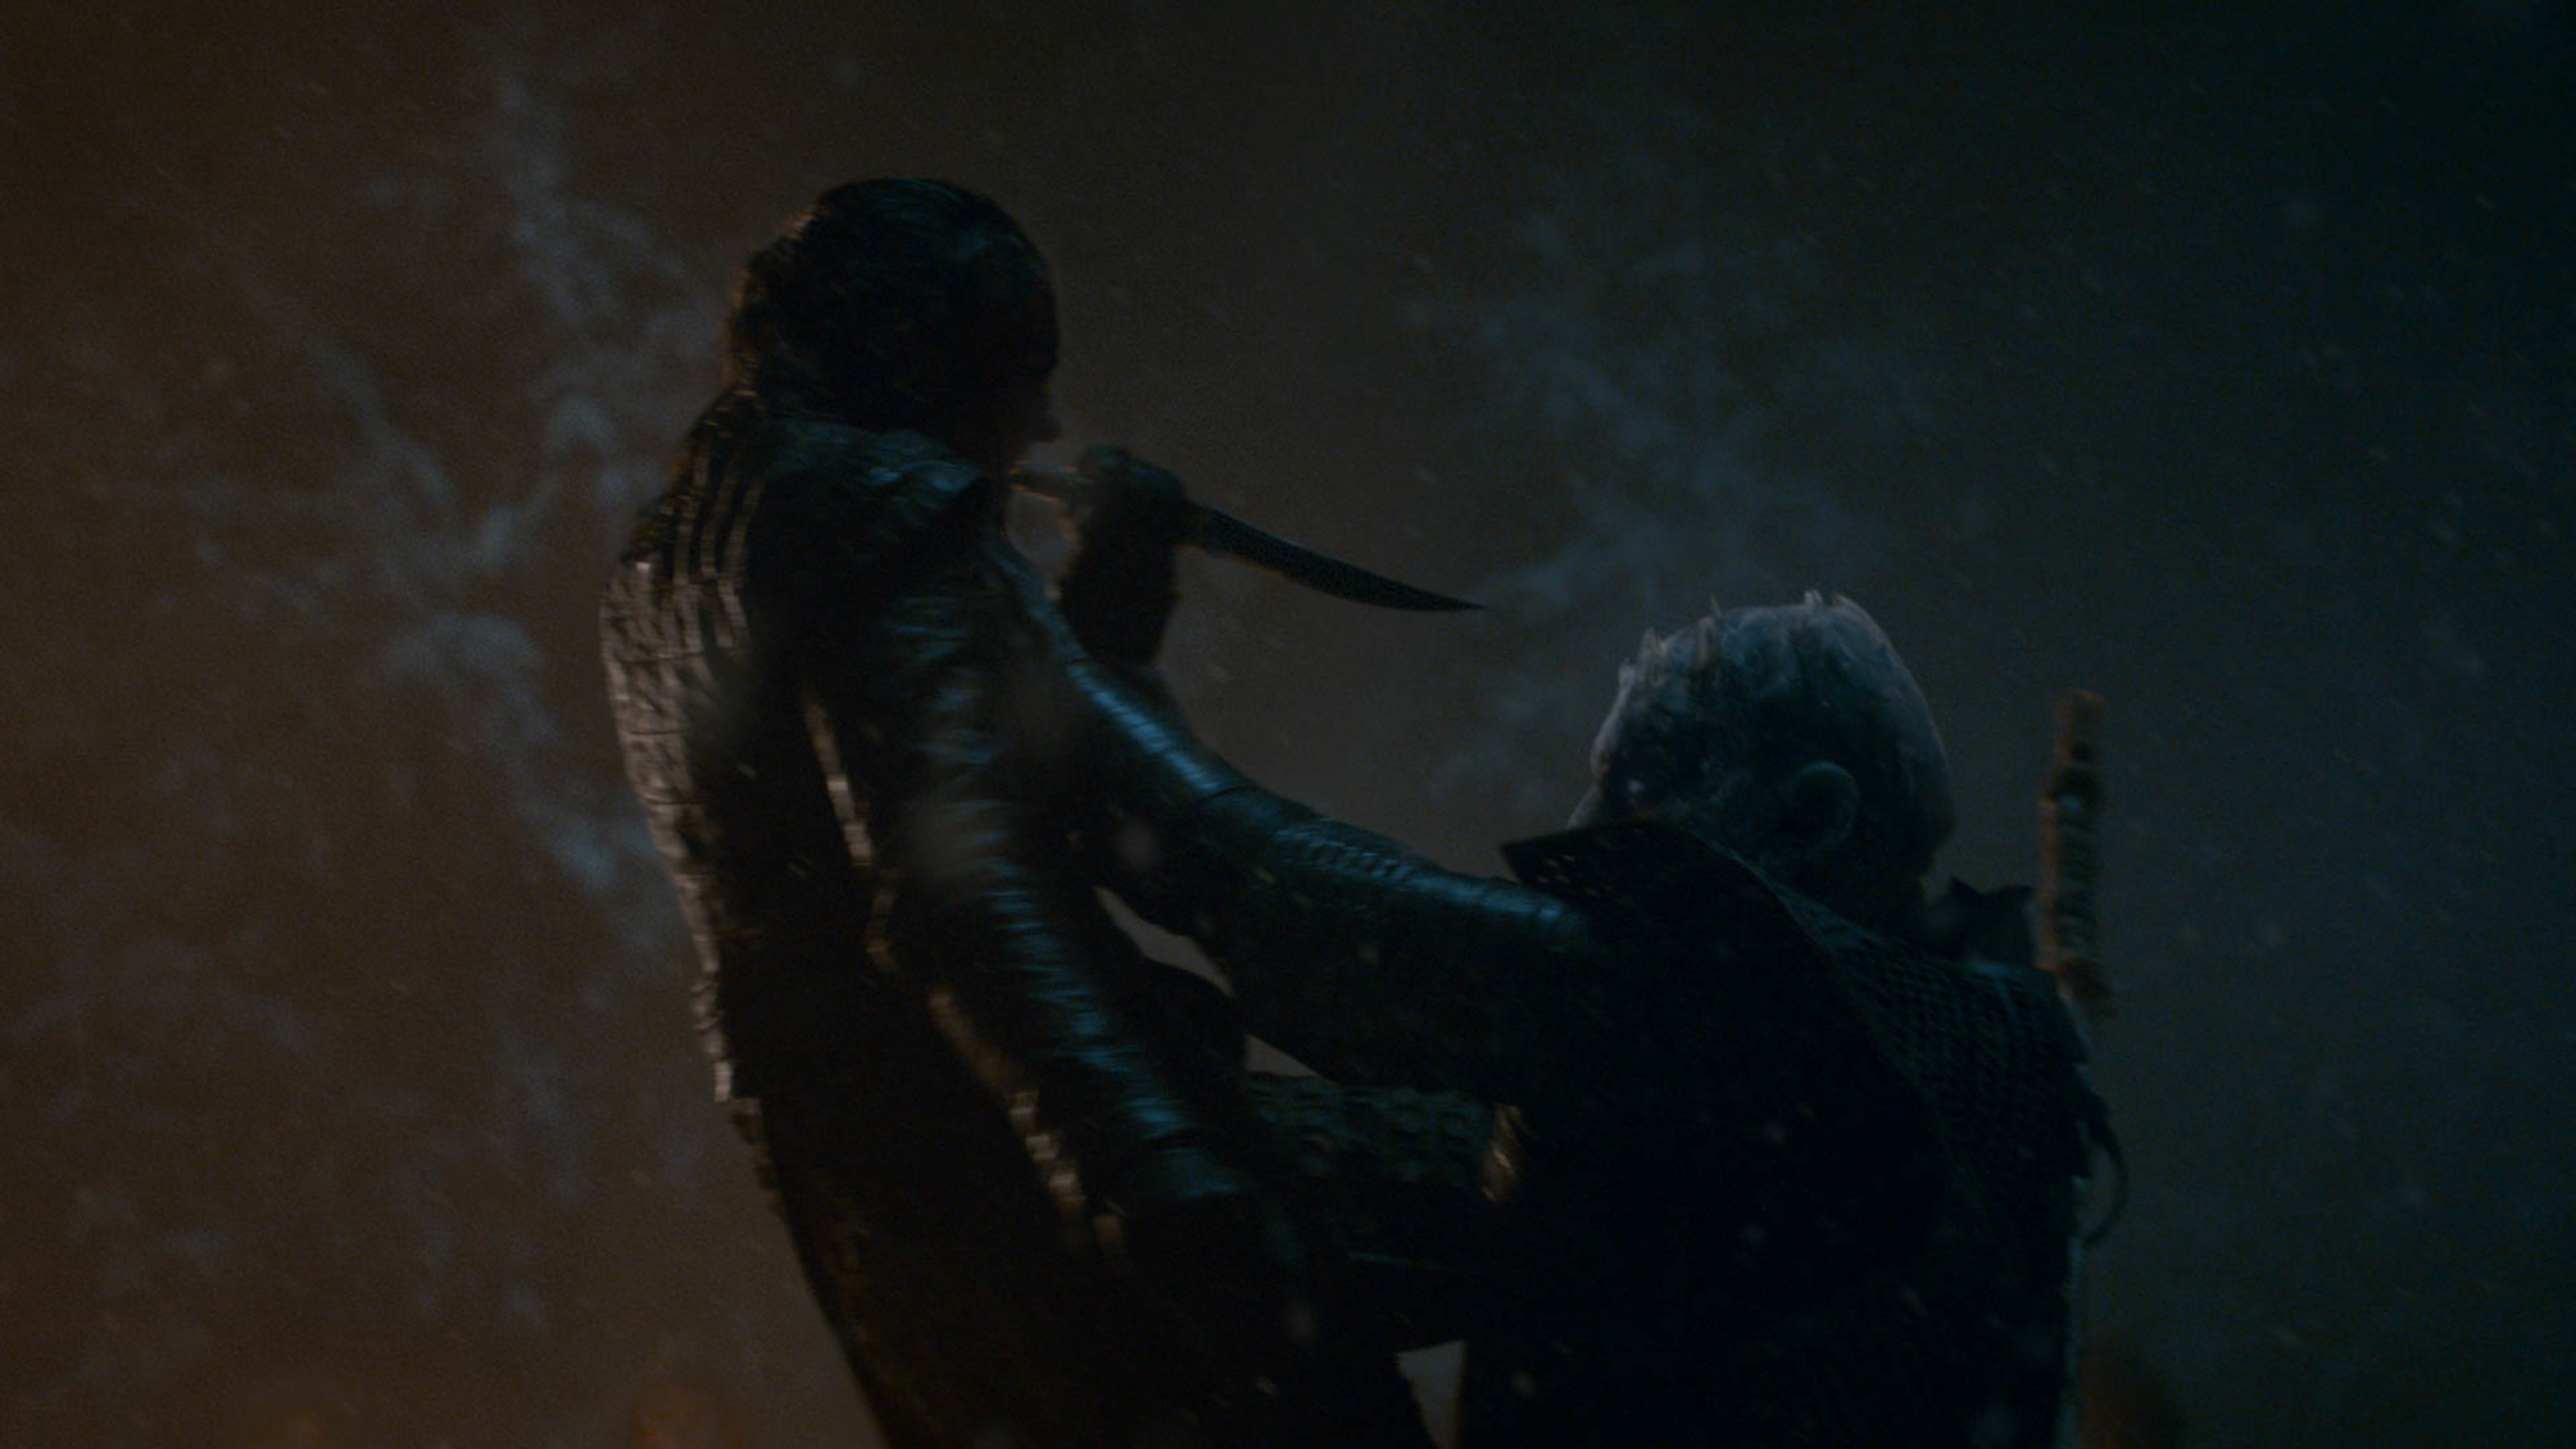 Arya Stark confronts the night king at the Battle of Winterfell